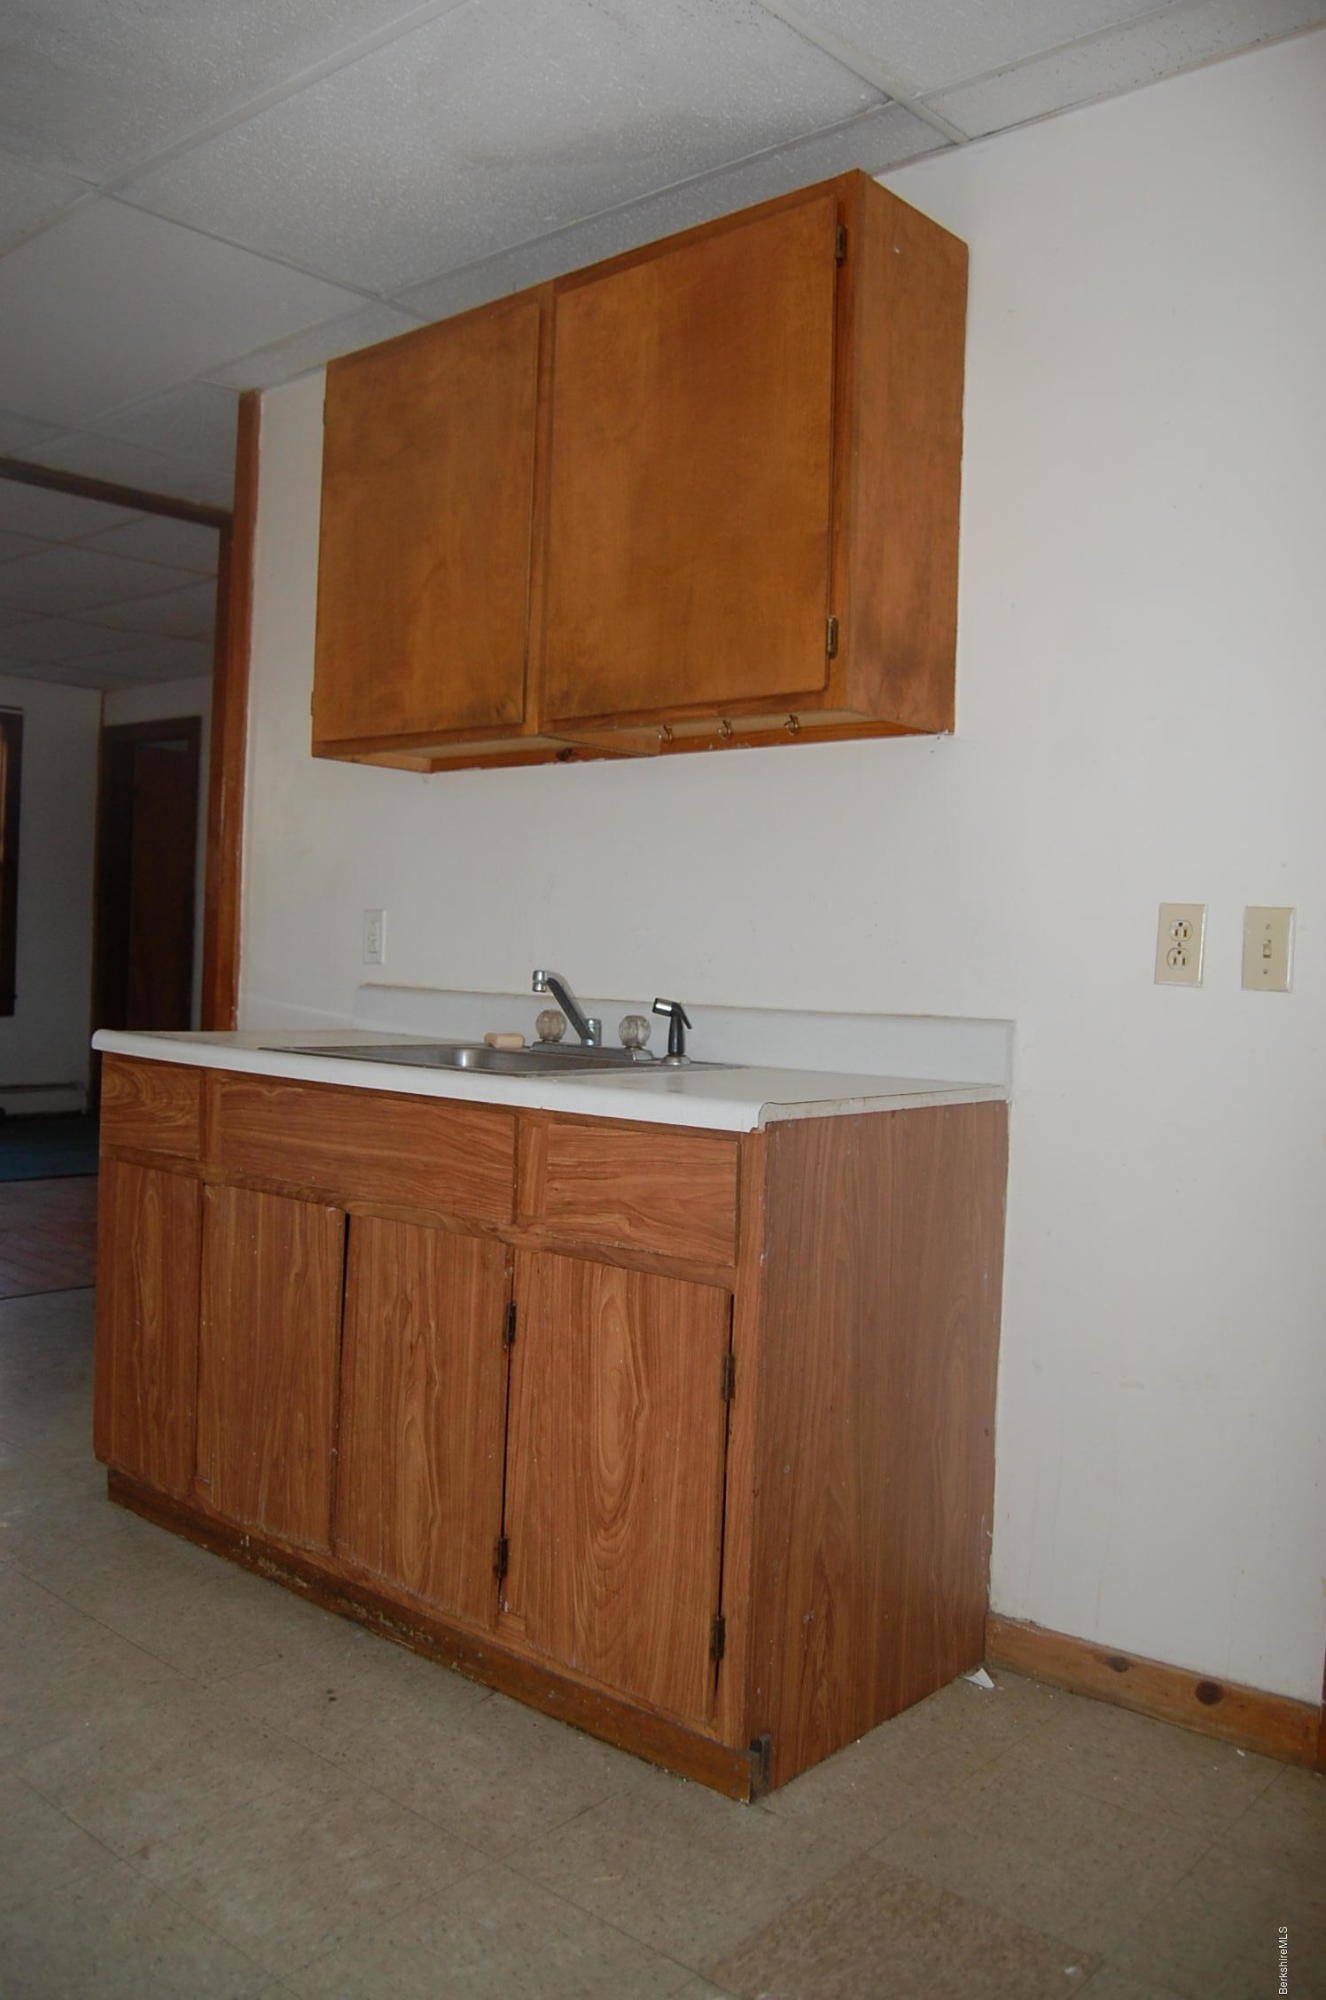 5. Kitchen sink & cabinets